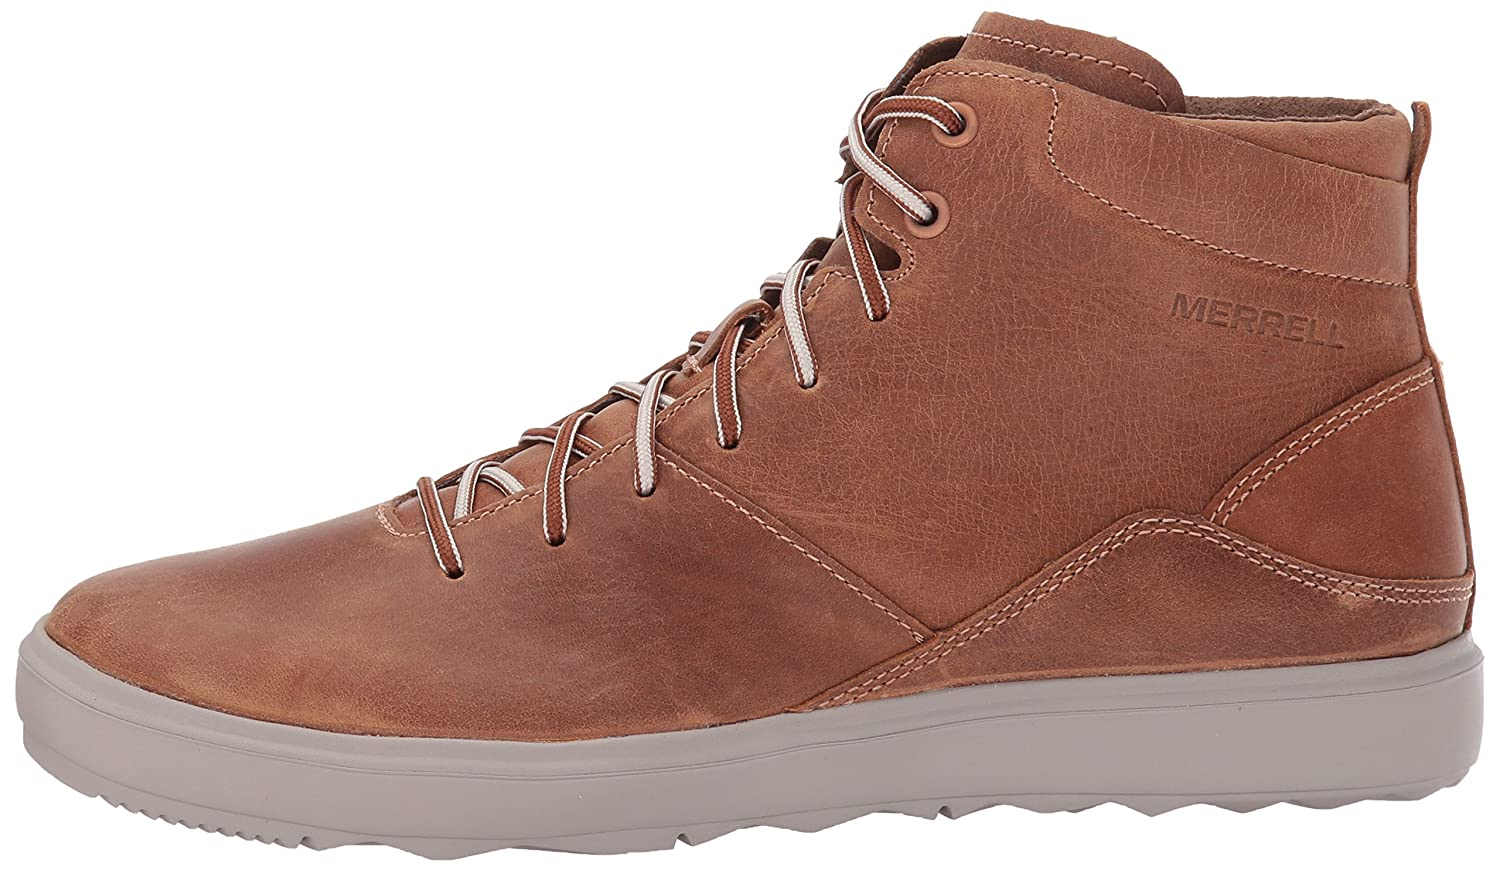 Merrell Women's Around Town Mid Lace Fashion Sneaker B01MQWQ7VV 7 B(M) US|Brown Sugar